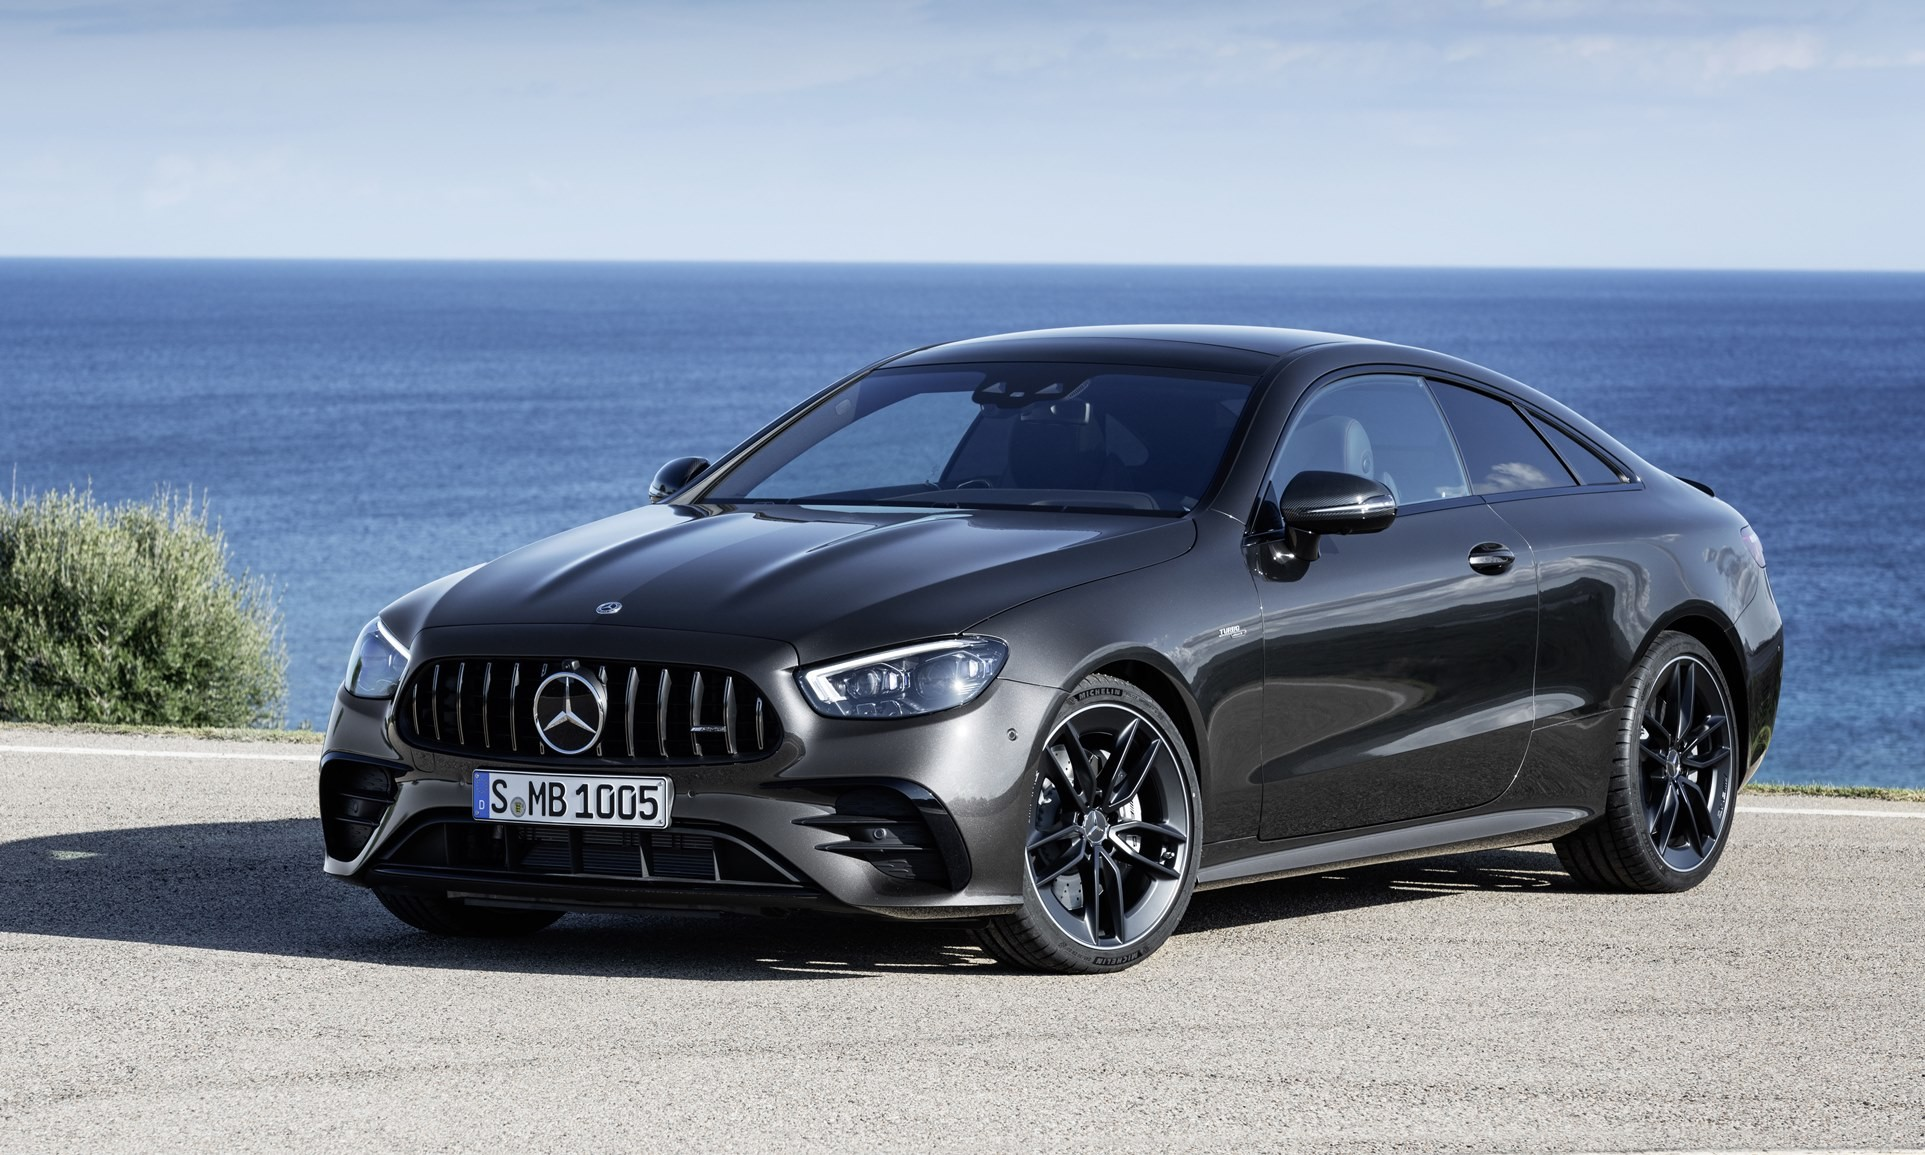 Facelifted Mercedes-Benz E-Class Coupe